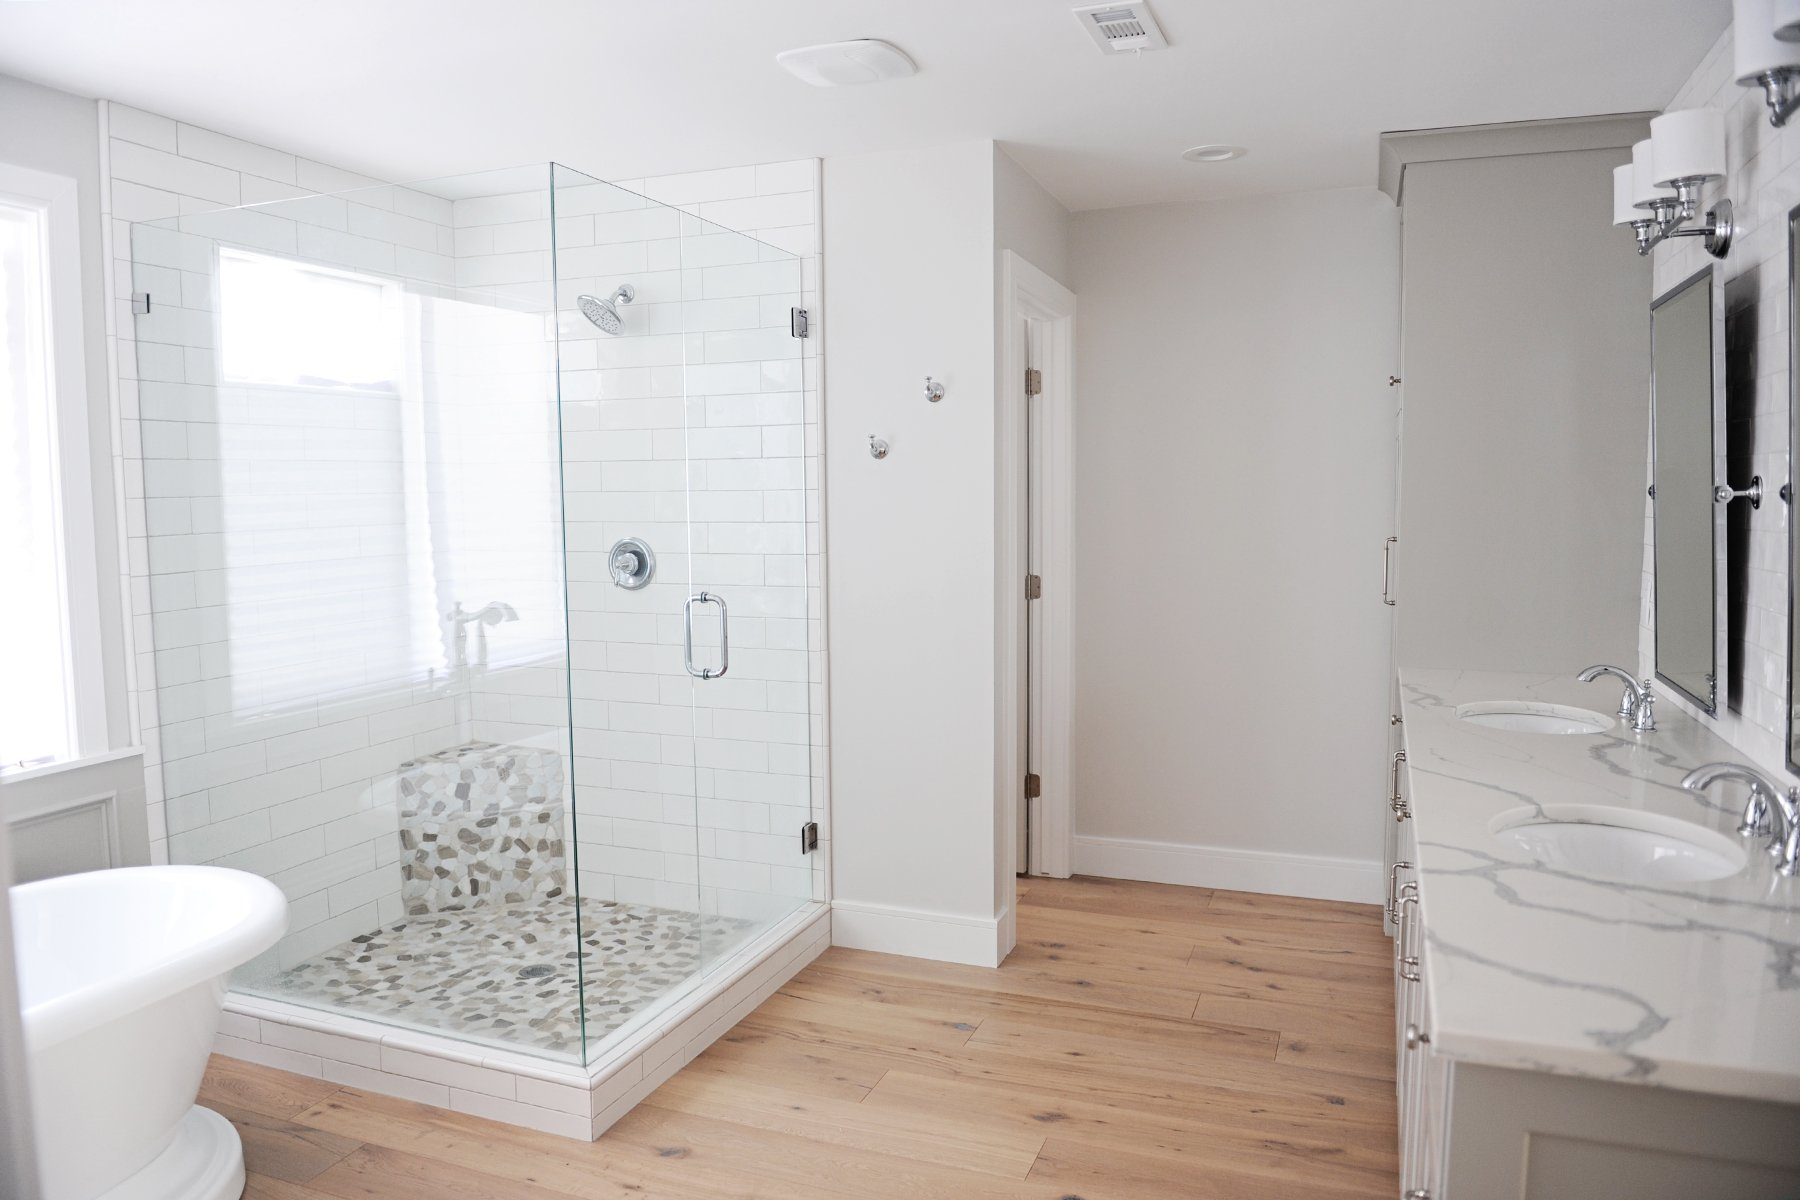 Master Bathroom Remodel & Renovation Idea: Before and After